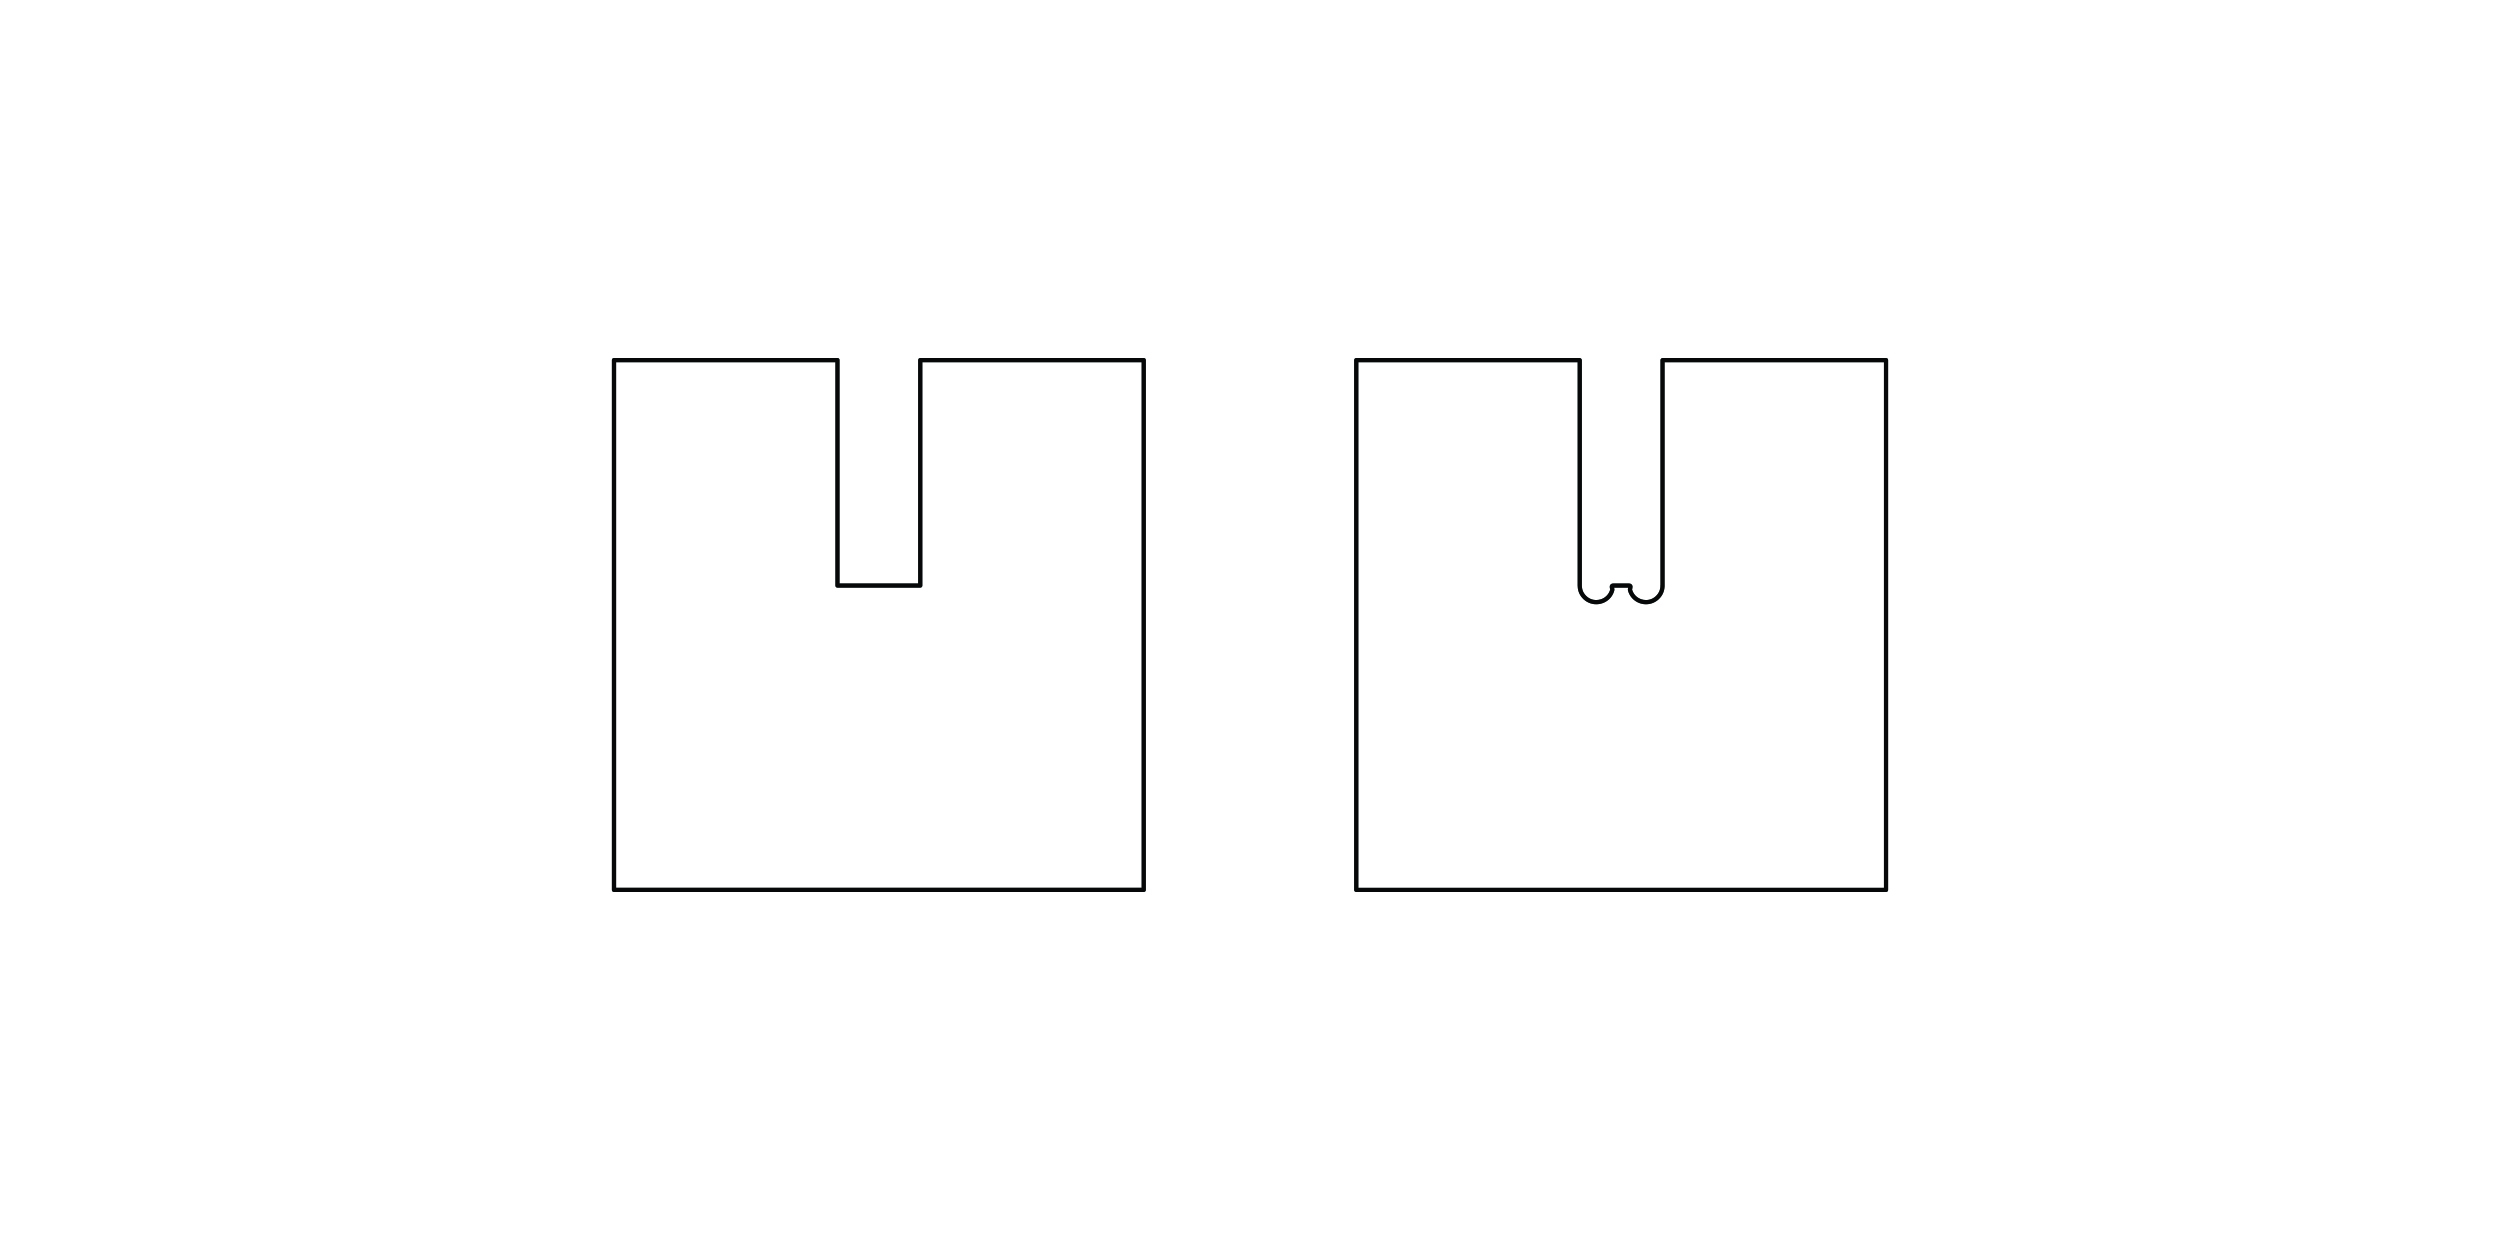 Vectors should be supplied with this extension taken into account. The shape on the left shows a shape without this taken into account.